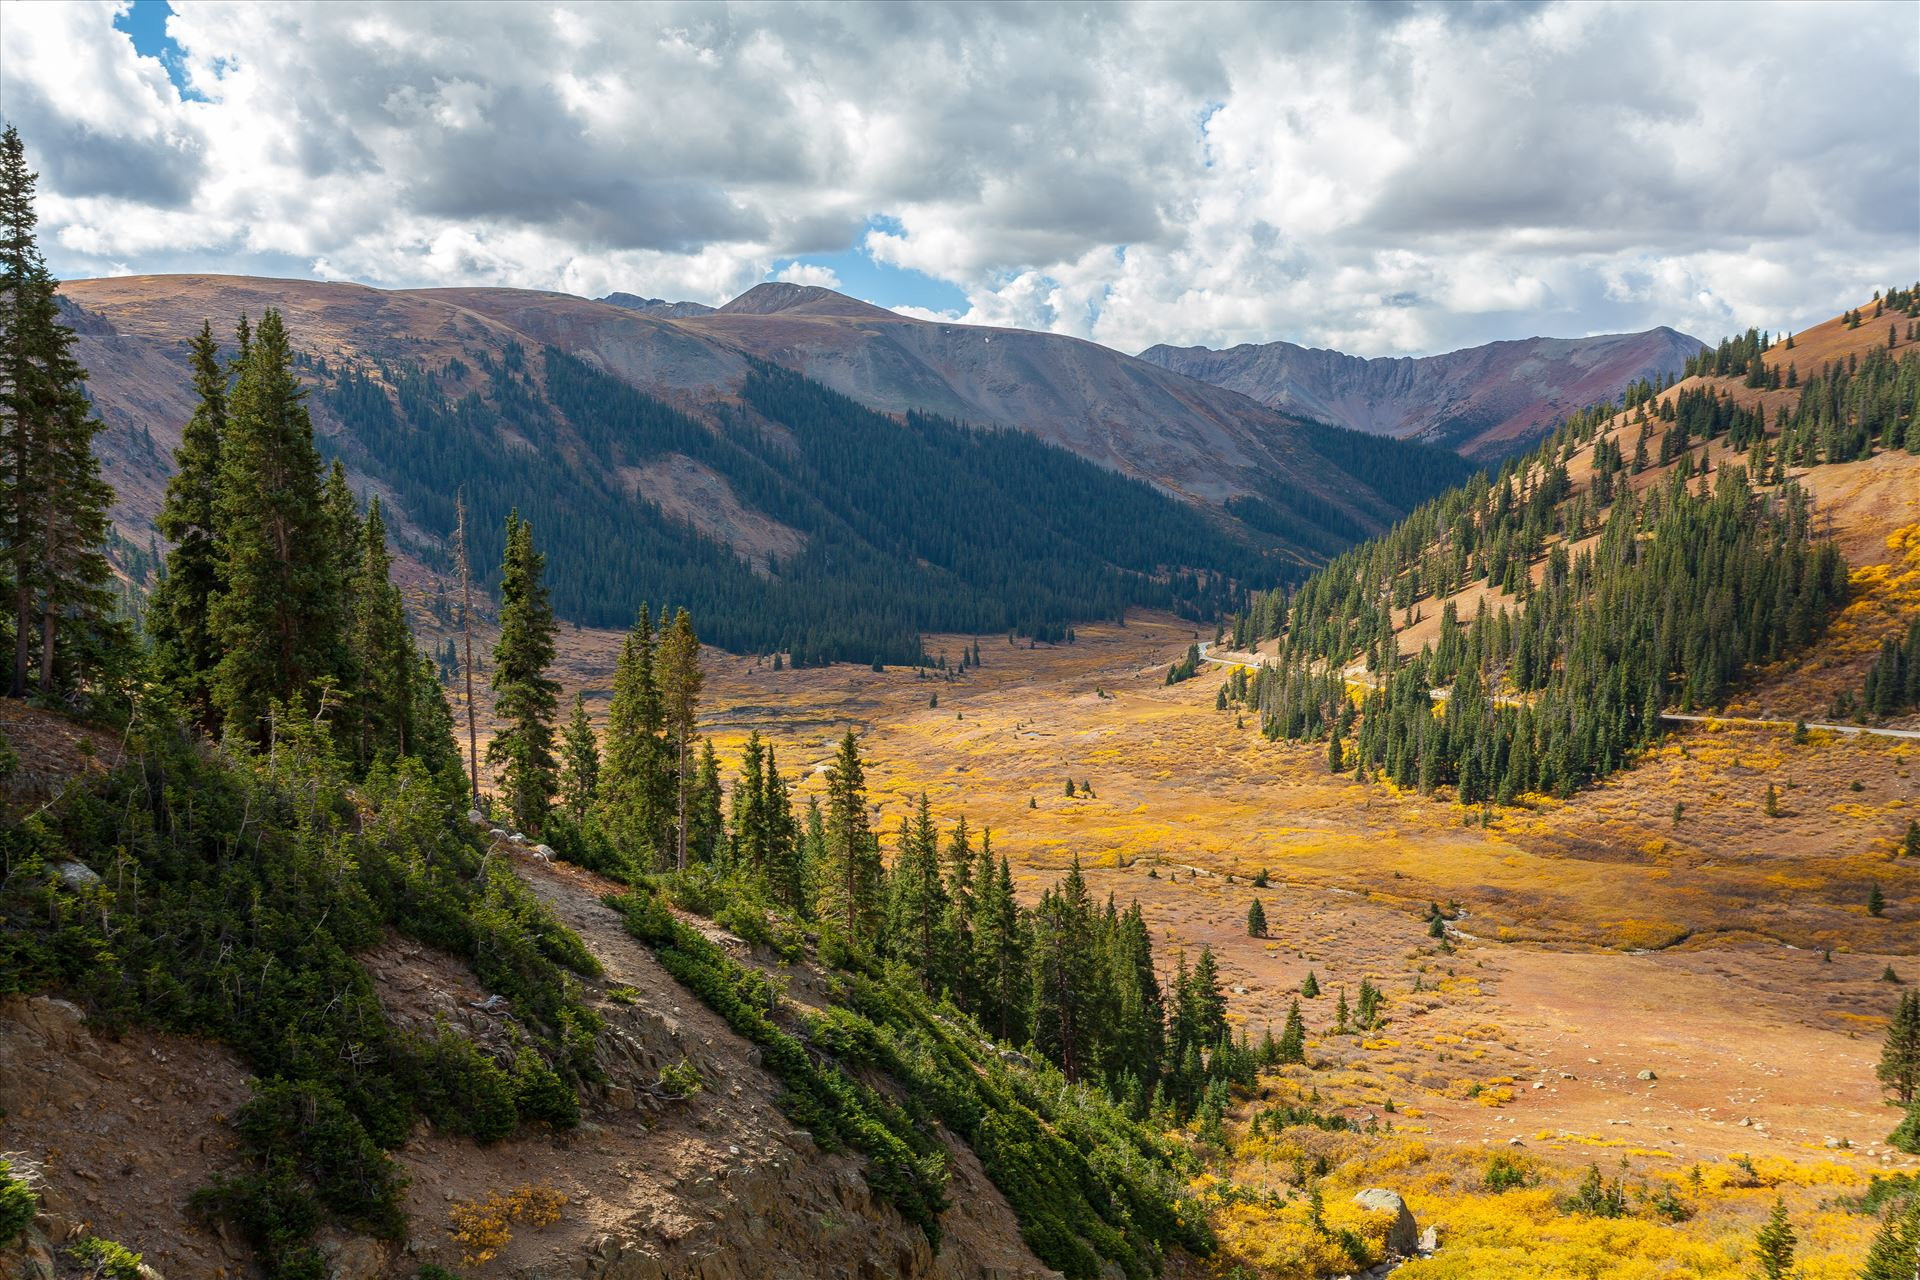 Independence Valley in Fall - From Independence Pass, highway 82, Independence Valley is an amazing sight to see any time of year. by Scott Smith Photos